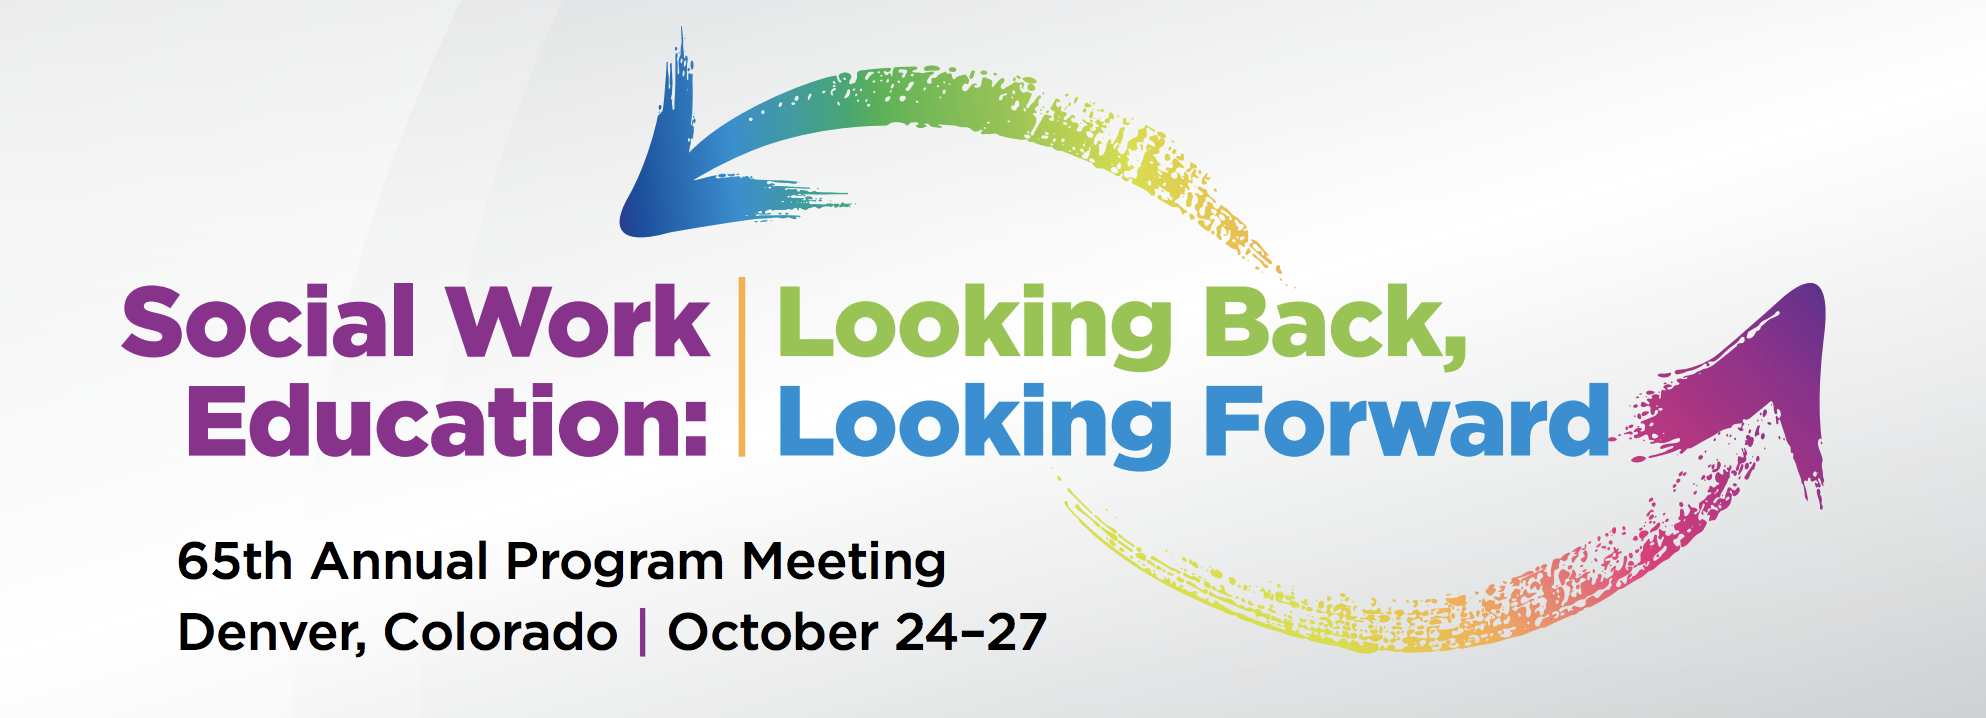 CSWE Annual Program Meeting banner